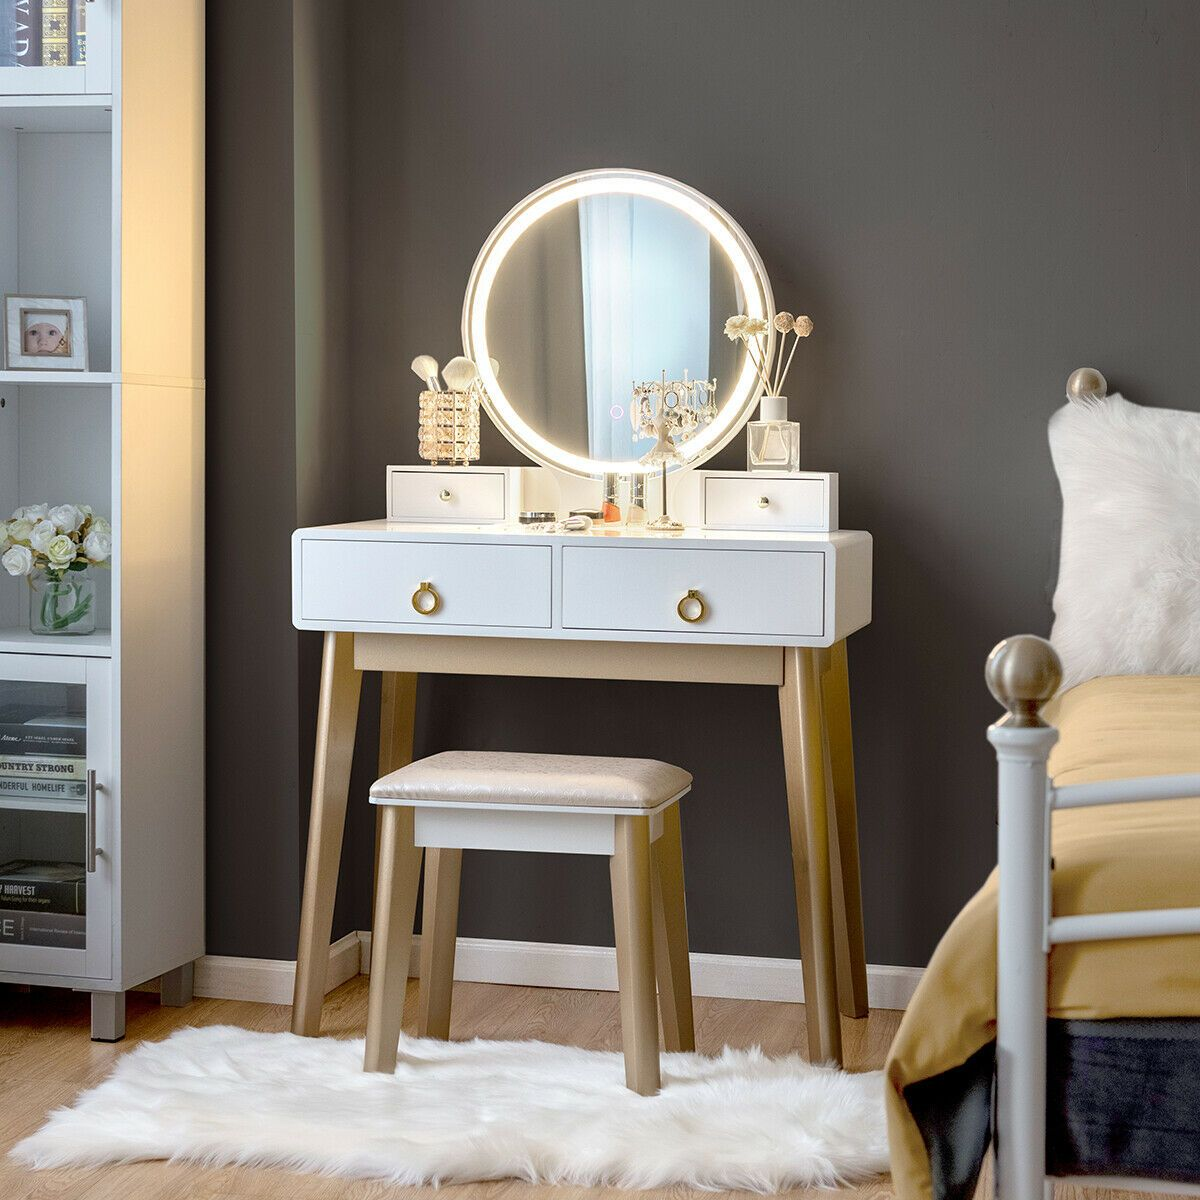 Beautiful Dressing Table Chairs Stools To Add Elegance To Your Vanity In 2020 Vanity Table Set Dressing Table With Chair Vanity Table